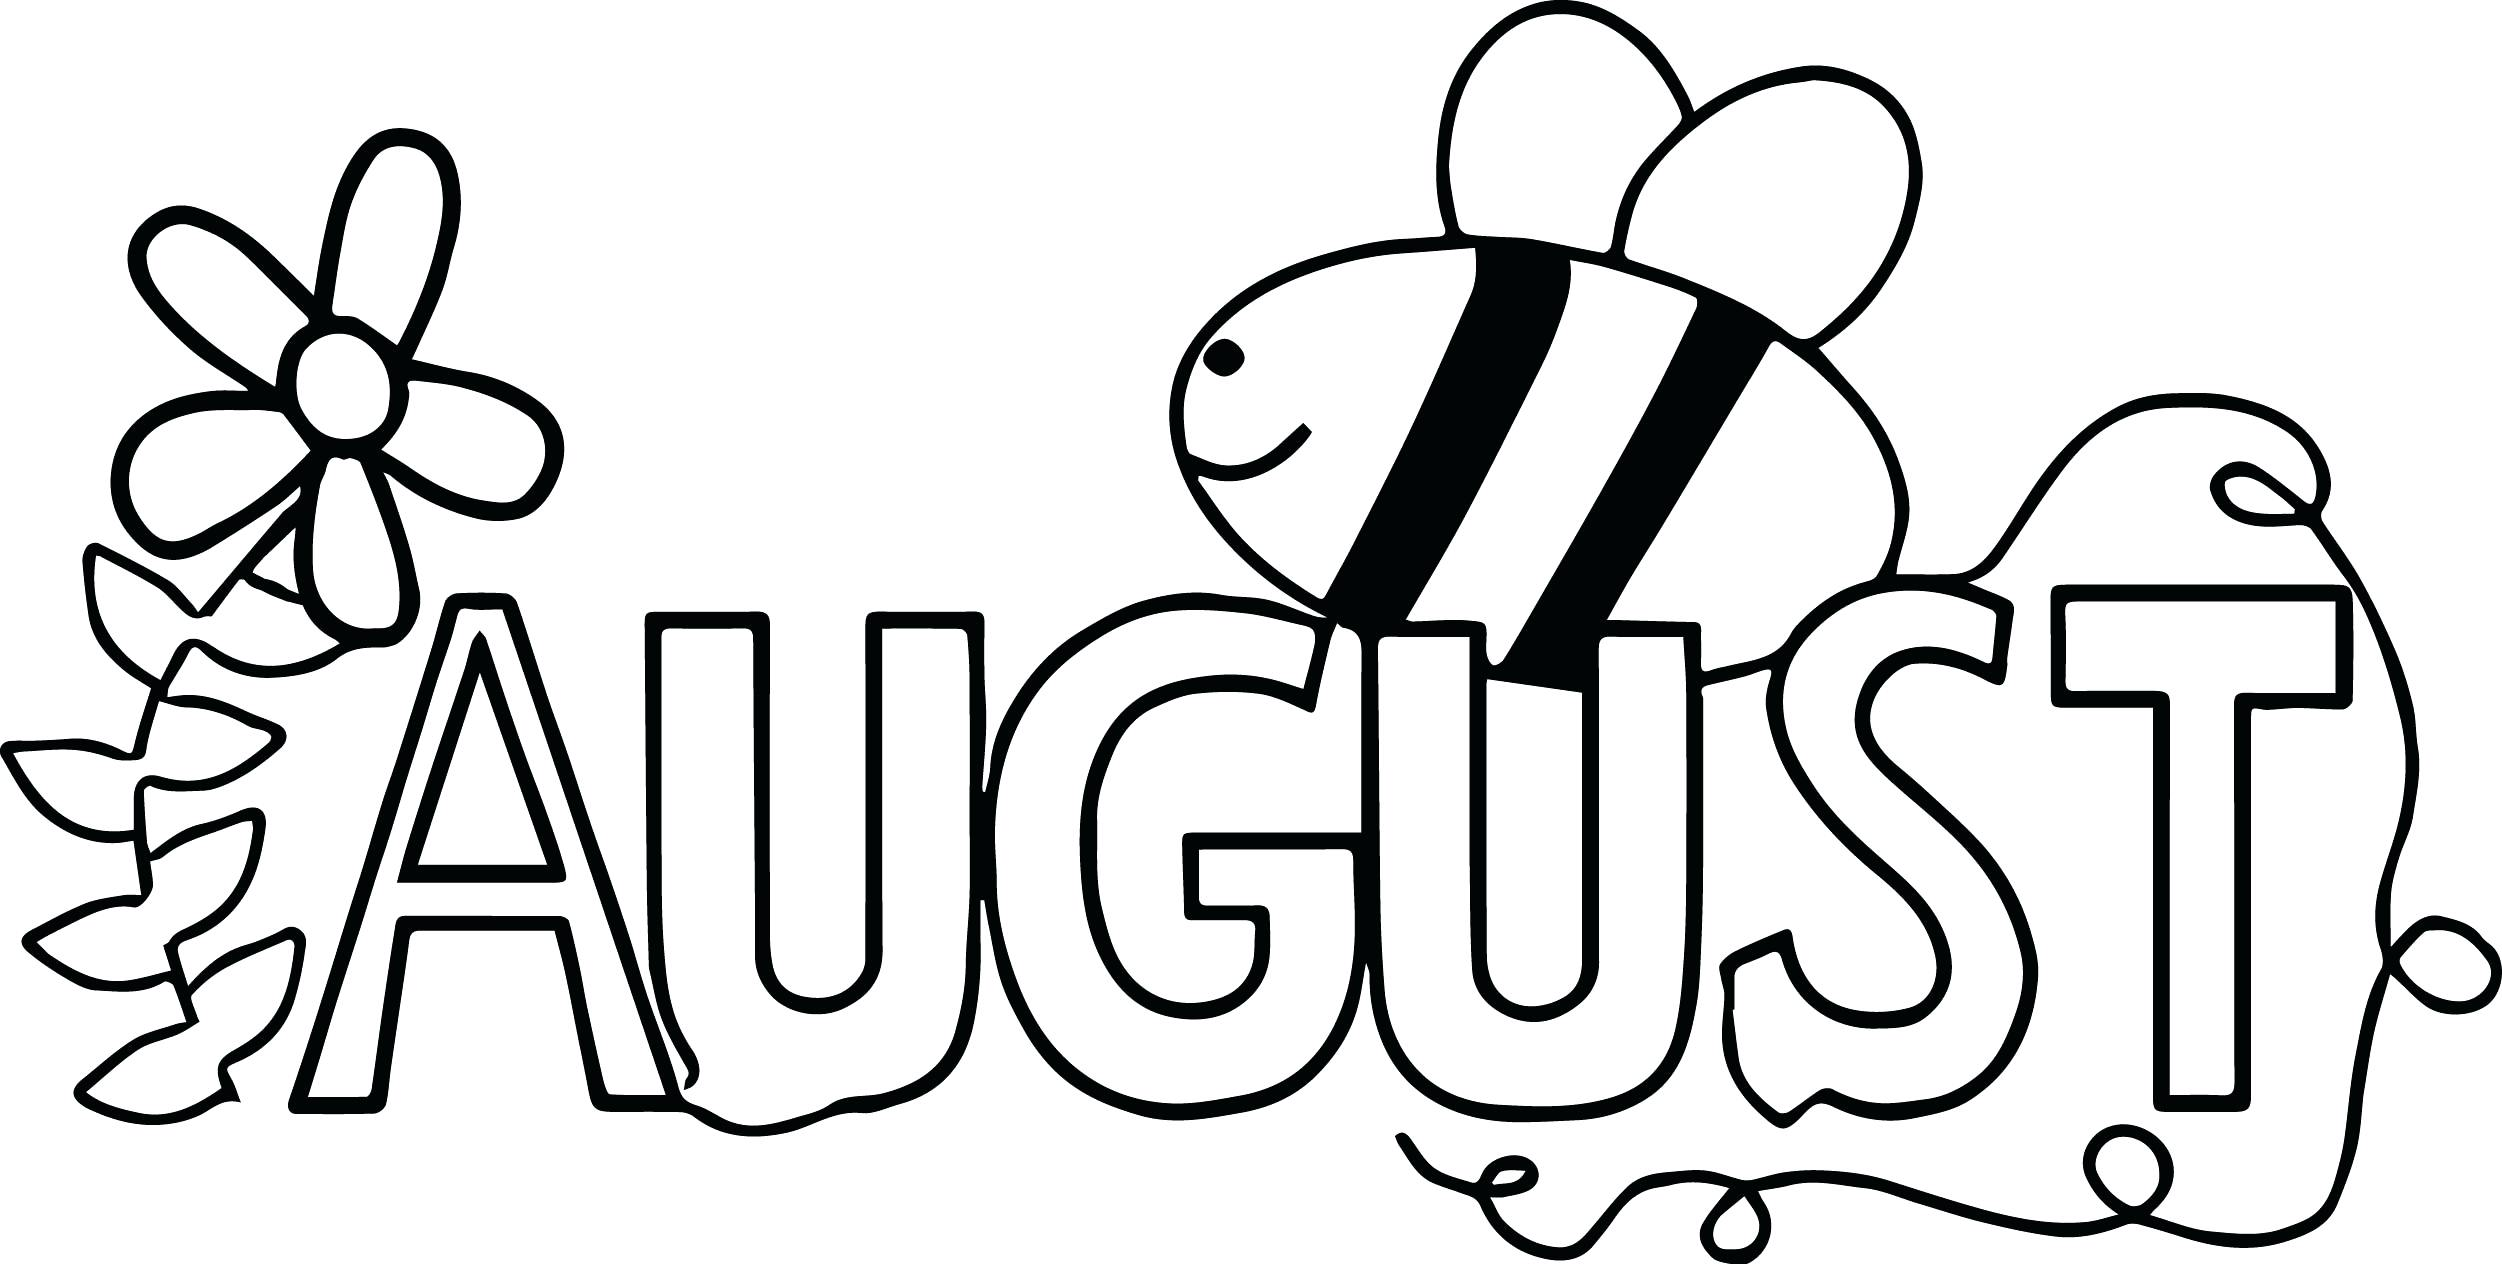 August coloring pages best coloring pages for kids